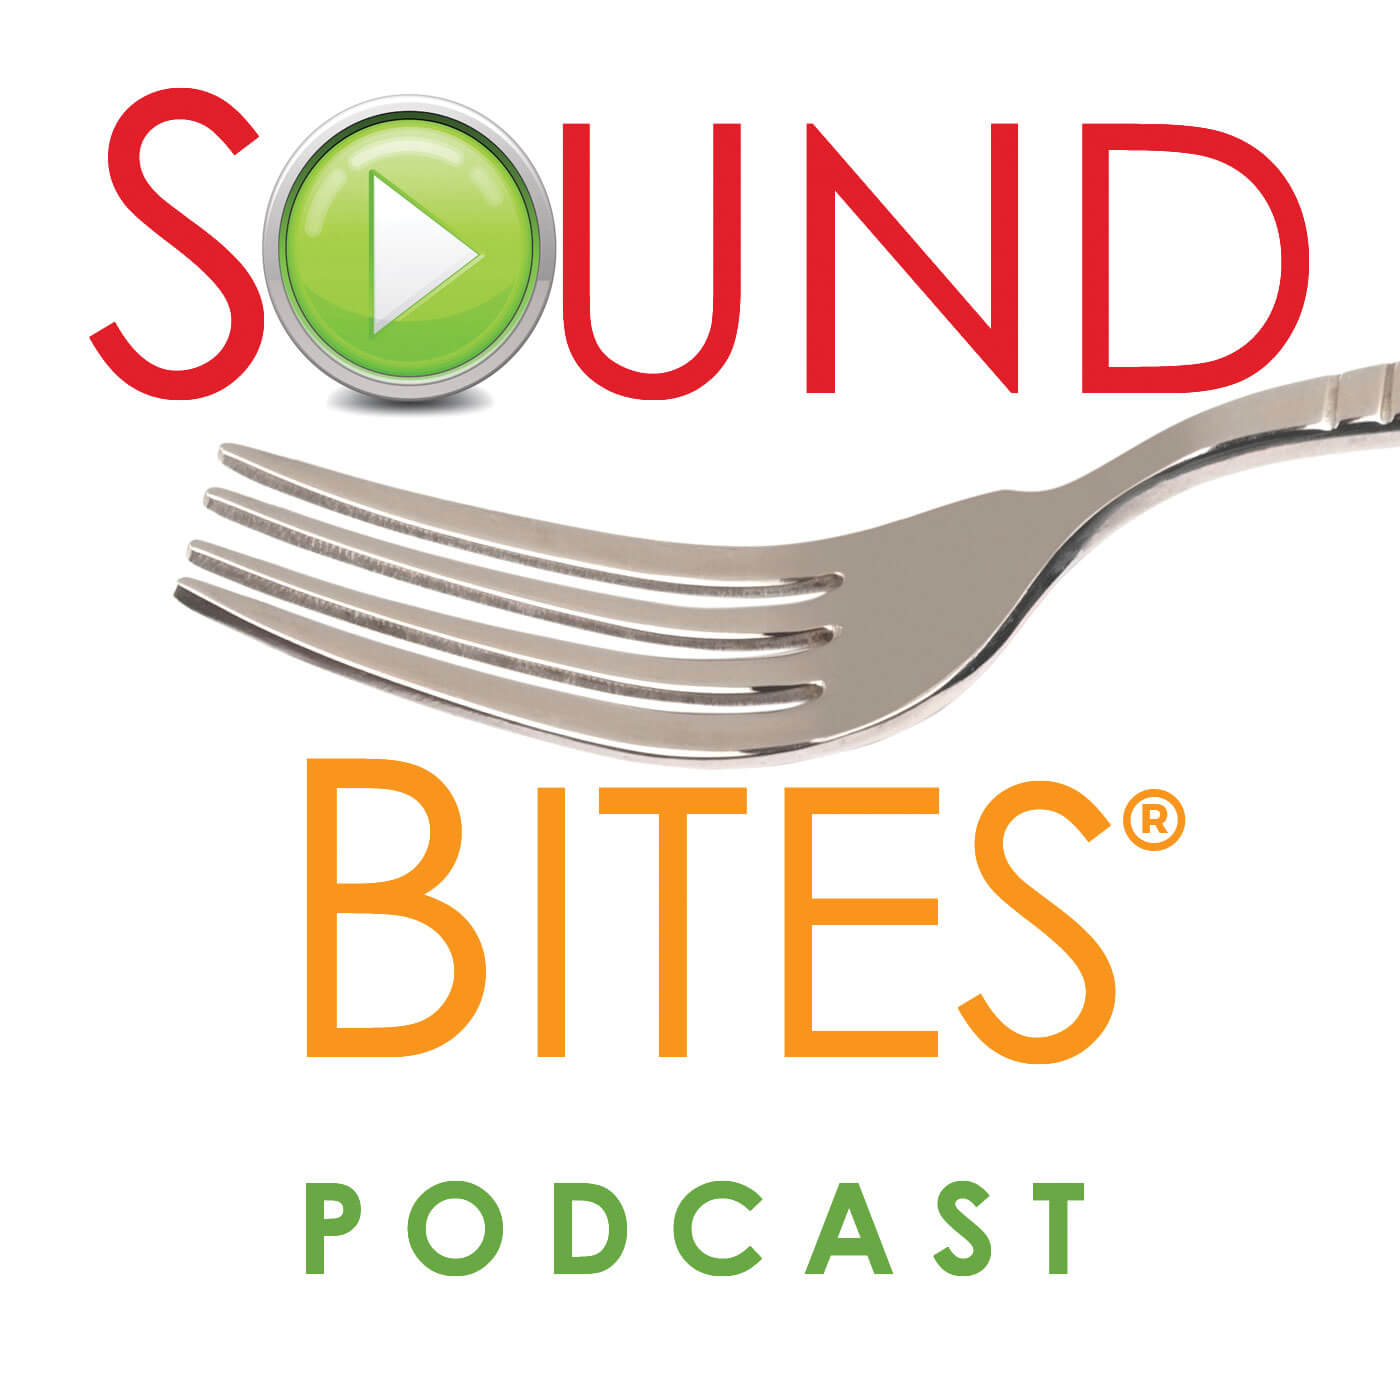 sound-bites-podcast-logo_2017